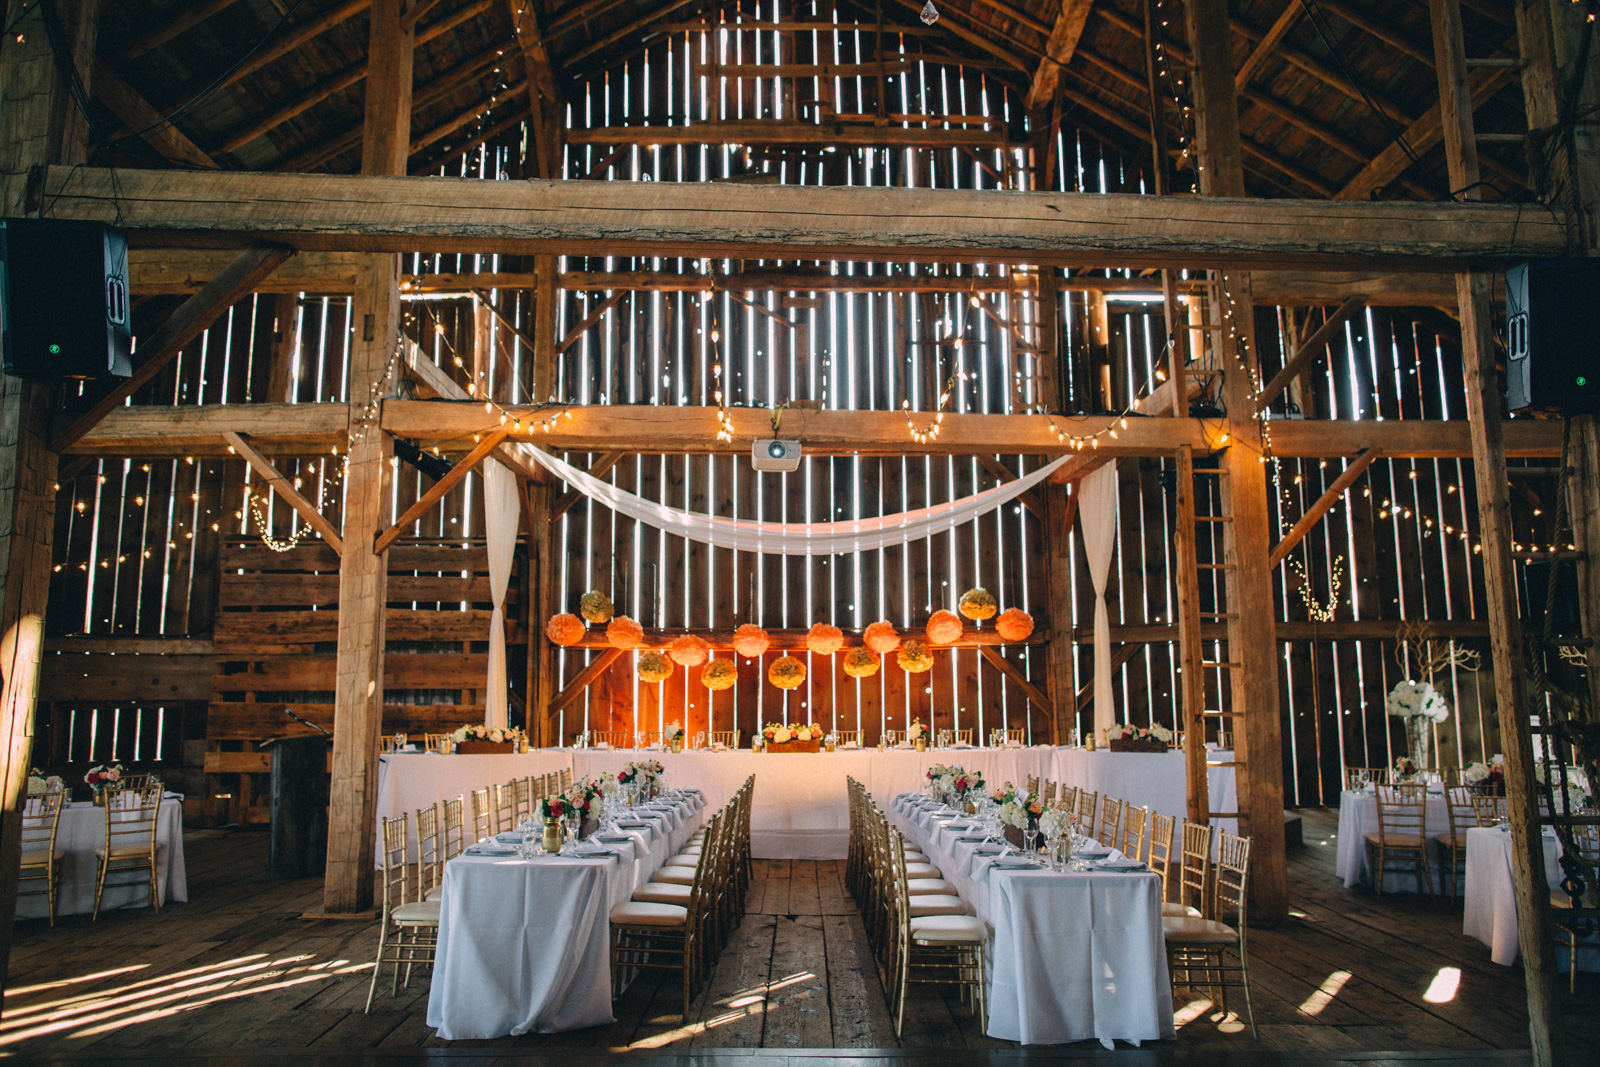 cambium-farms-wedding-photography-by-sam-wong-of-artanis-collective_46